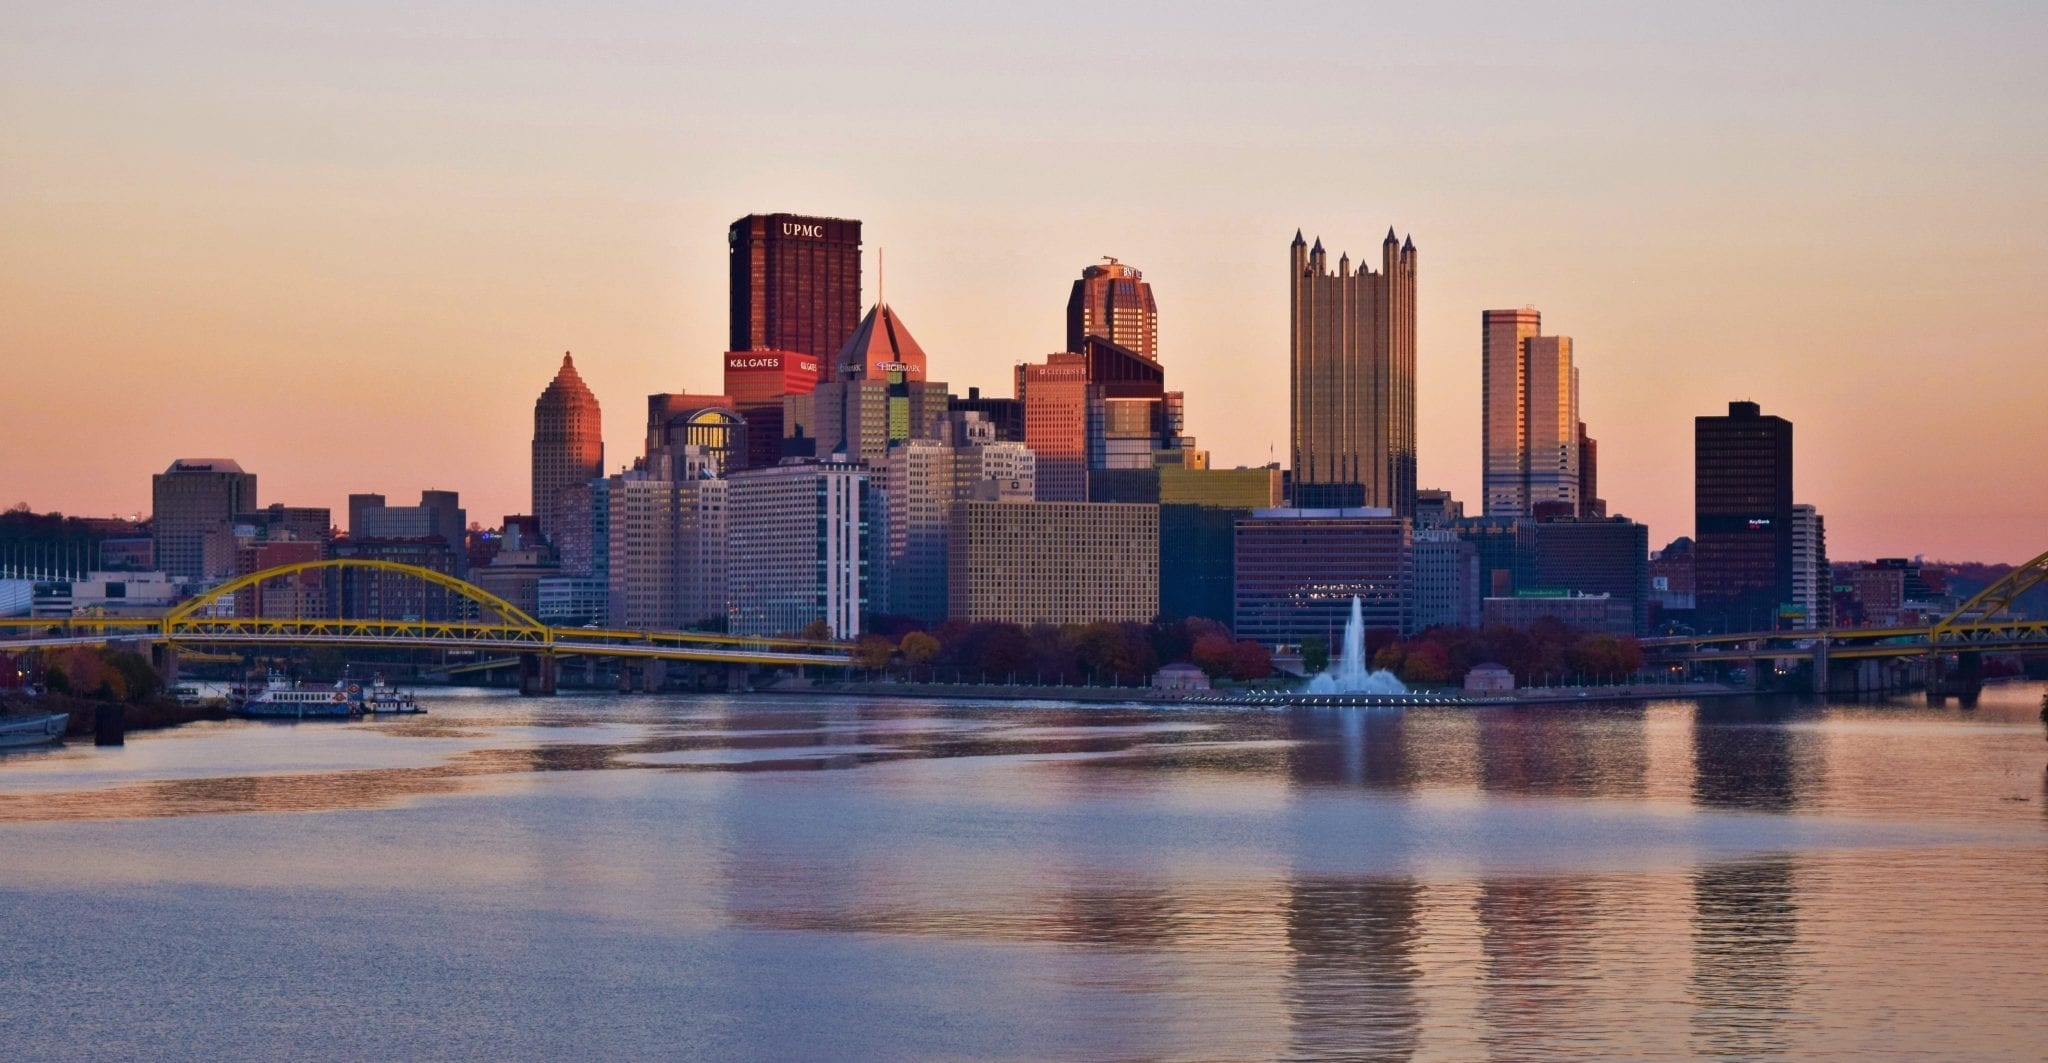 Though Squirrel Hill isn't visible in this image of Pittsburgh and the Point, the sunset shot at golden hour is still one of my favorites